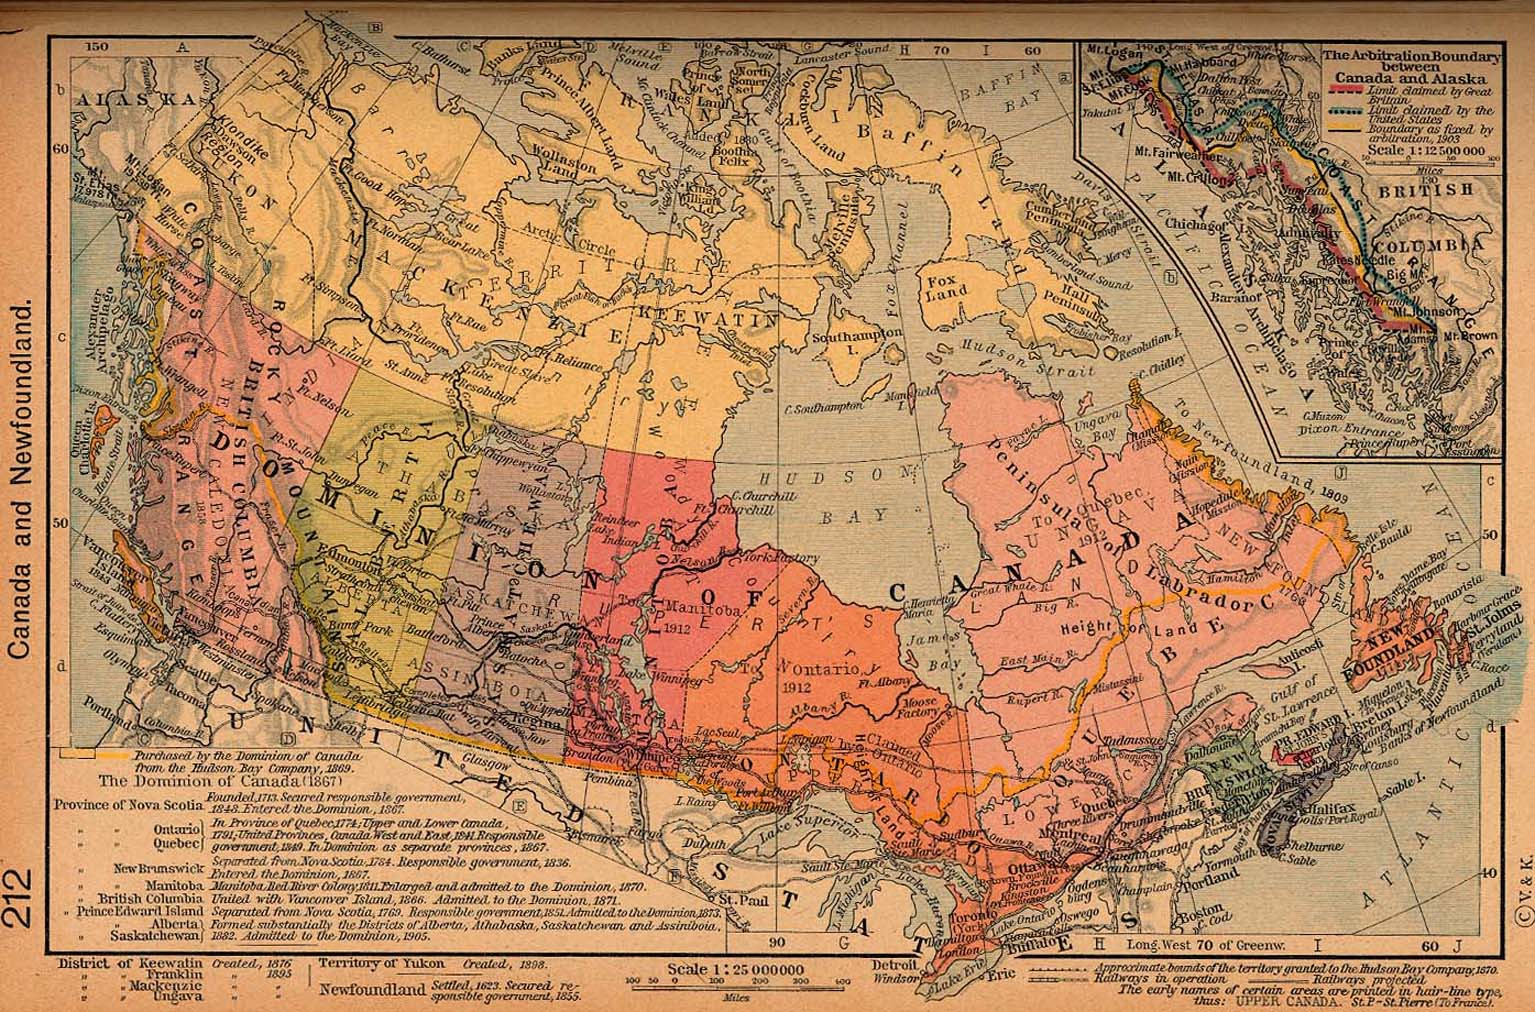 canada maps ancient desktop 1535x1012 hd wallpaper 746827jpg 1535x1012